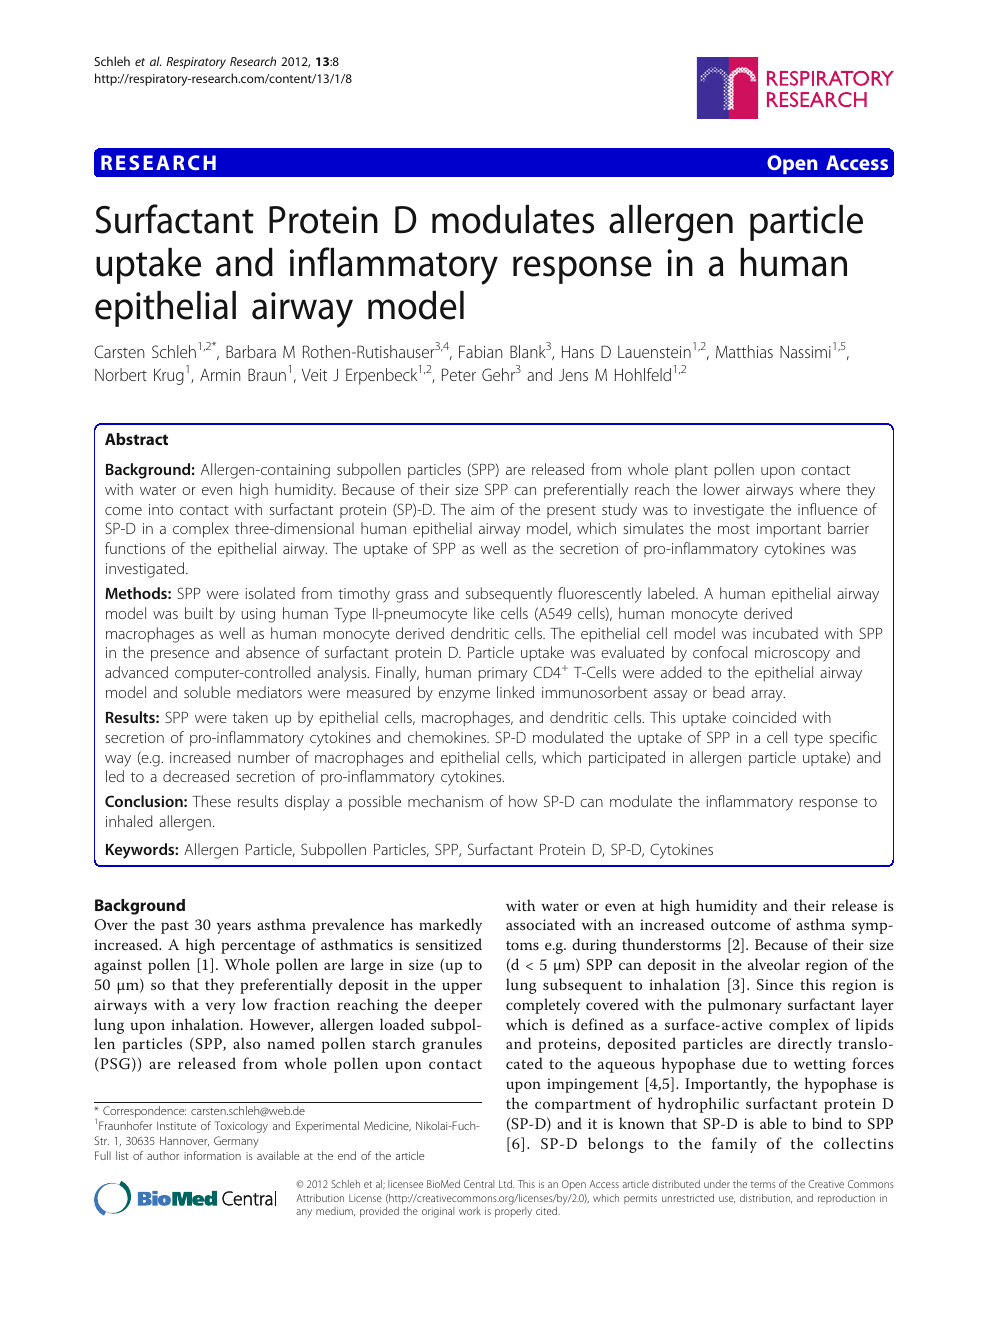 Surfactant Protein D modulates allergen particle uptake and